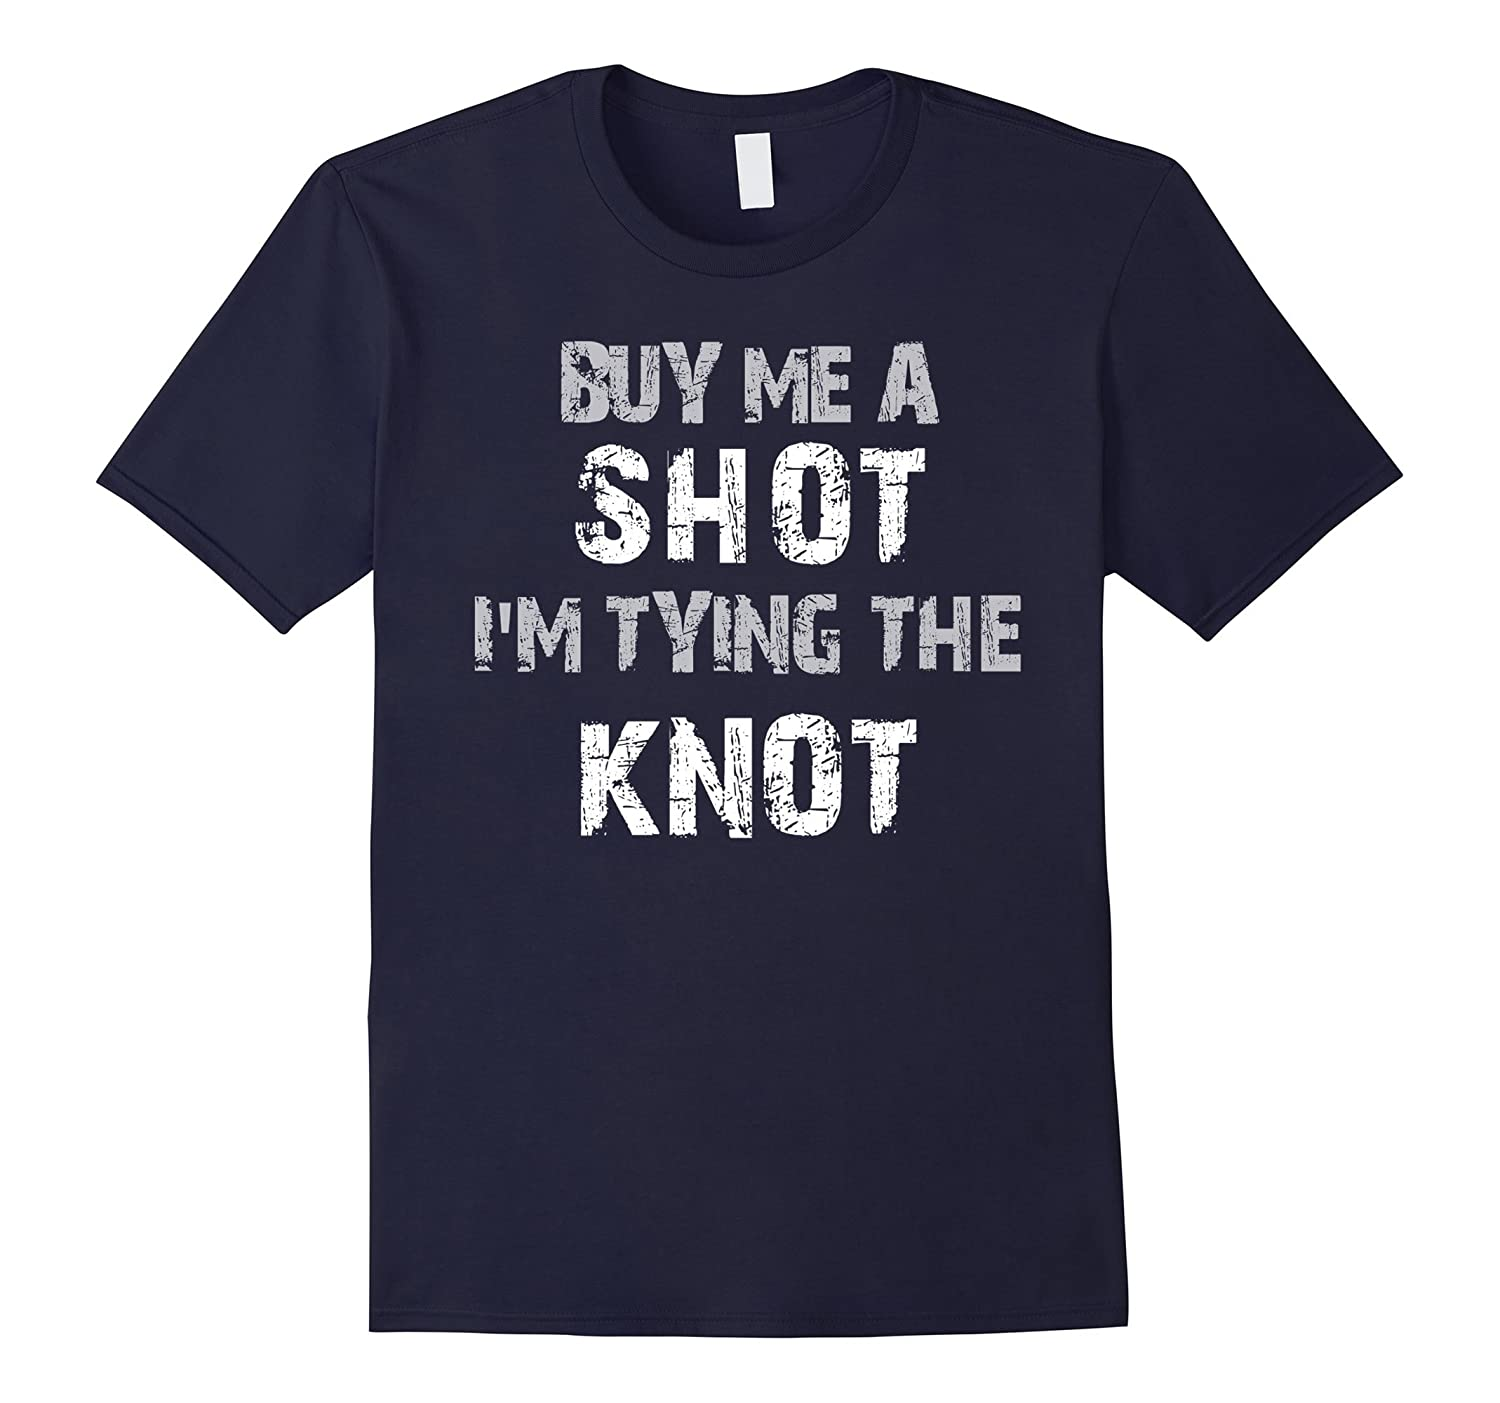 BUY ME A SHOT I'M TYING THE KNOT Funny Bachelor Party Shirt-FL